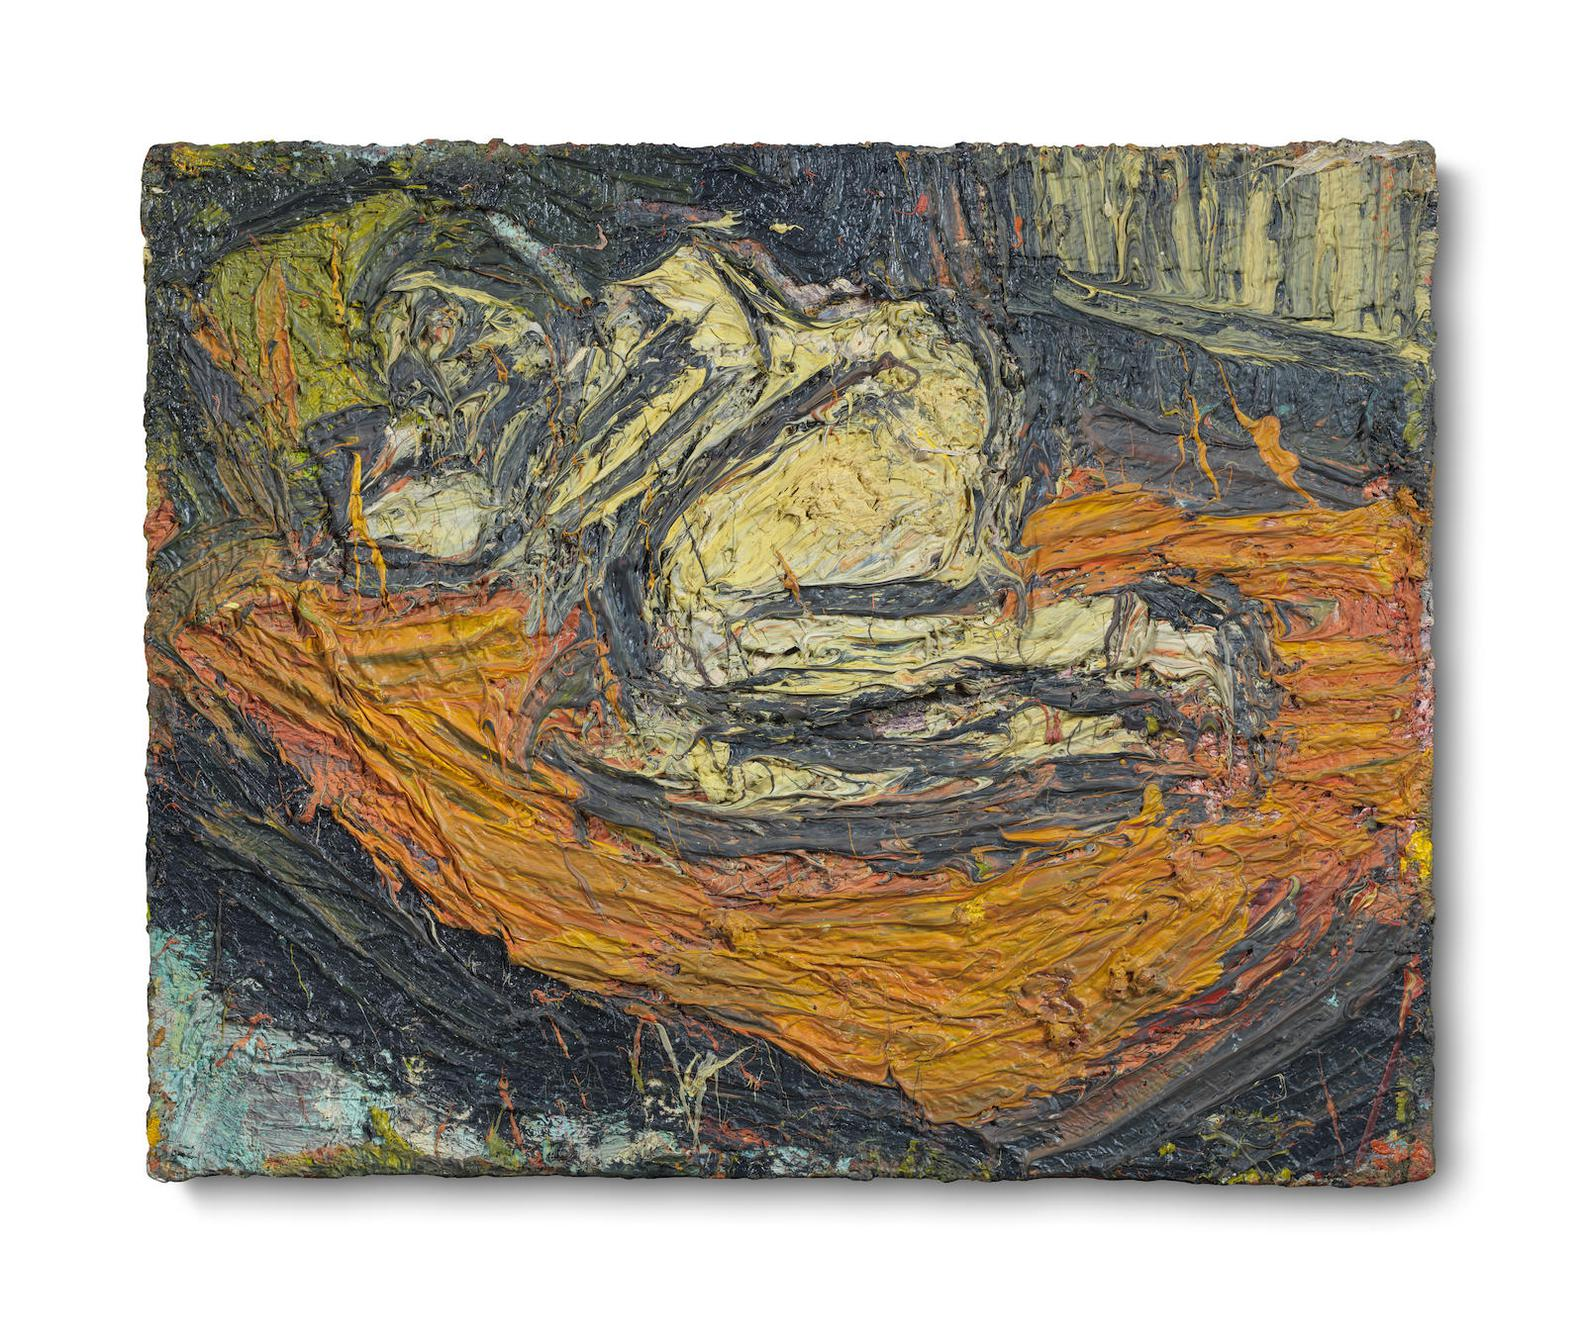 Leon Kossoff-Nude On A Red Bed No. 3-1968